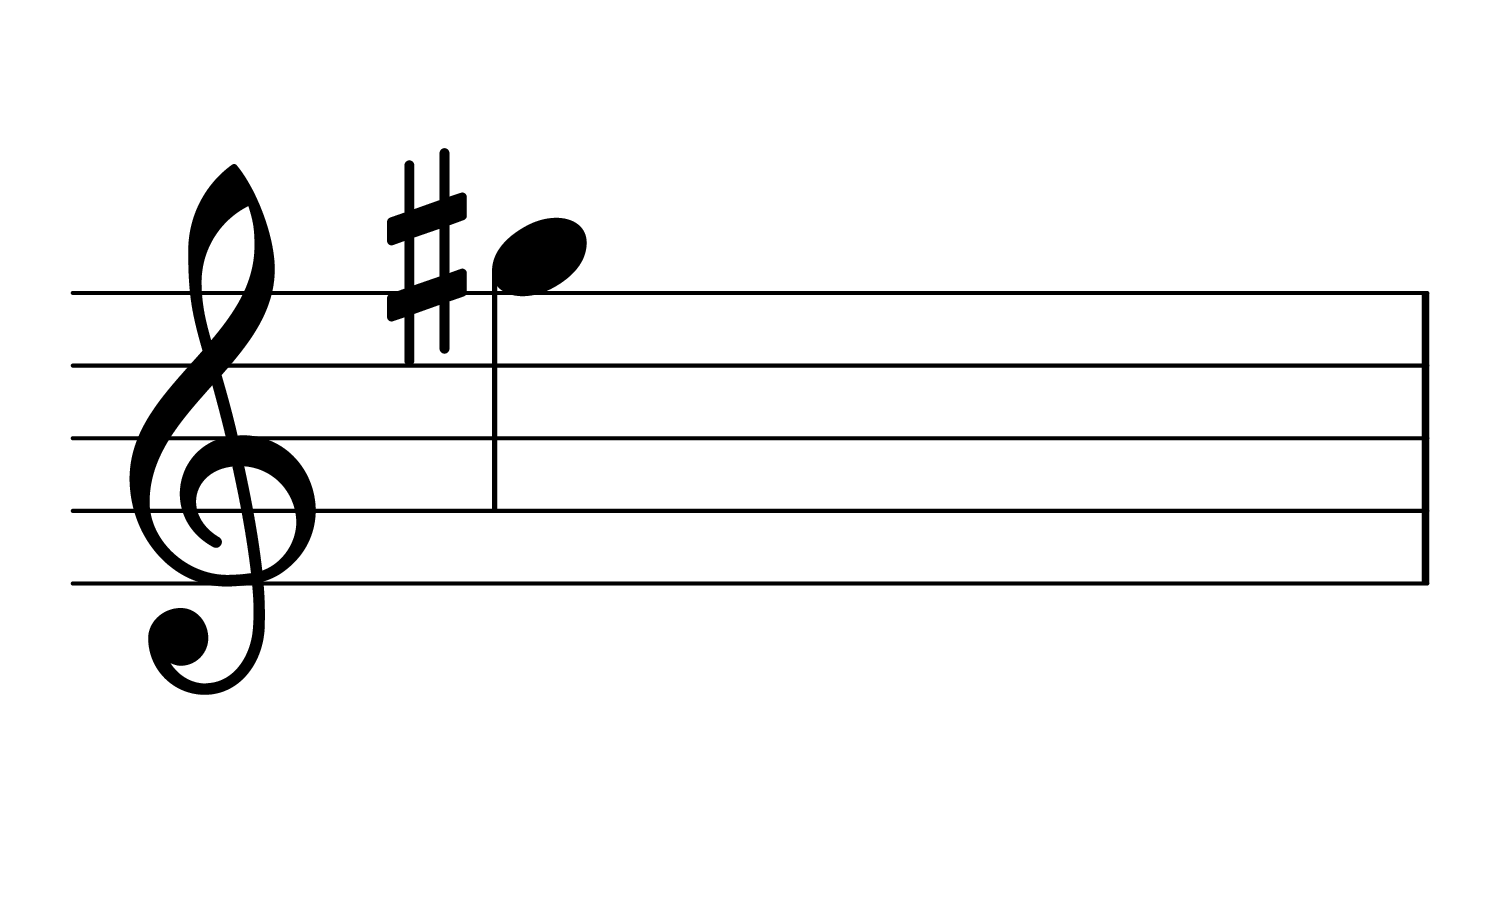 Treble clef with note G♯4